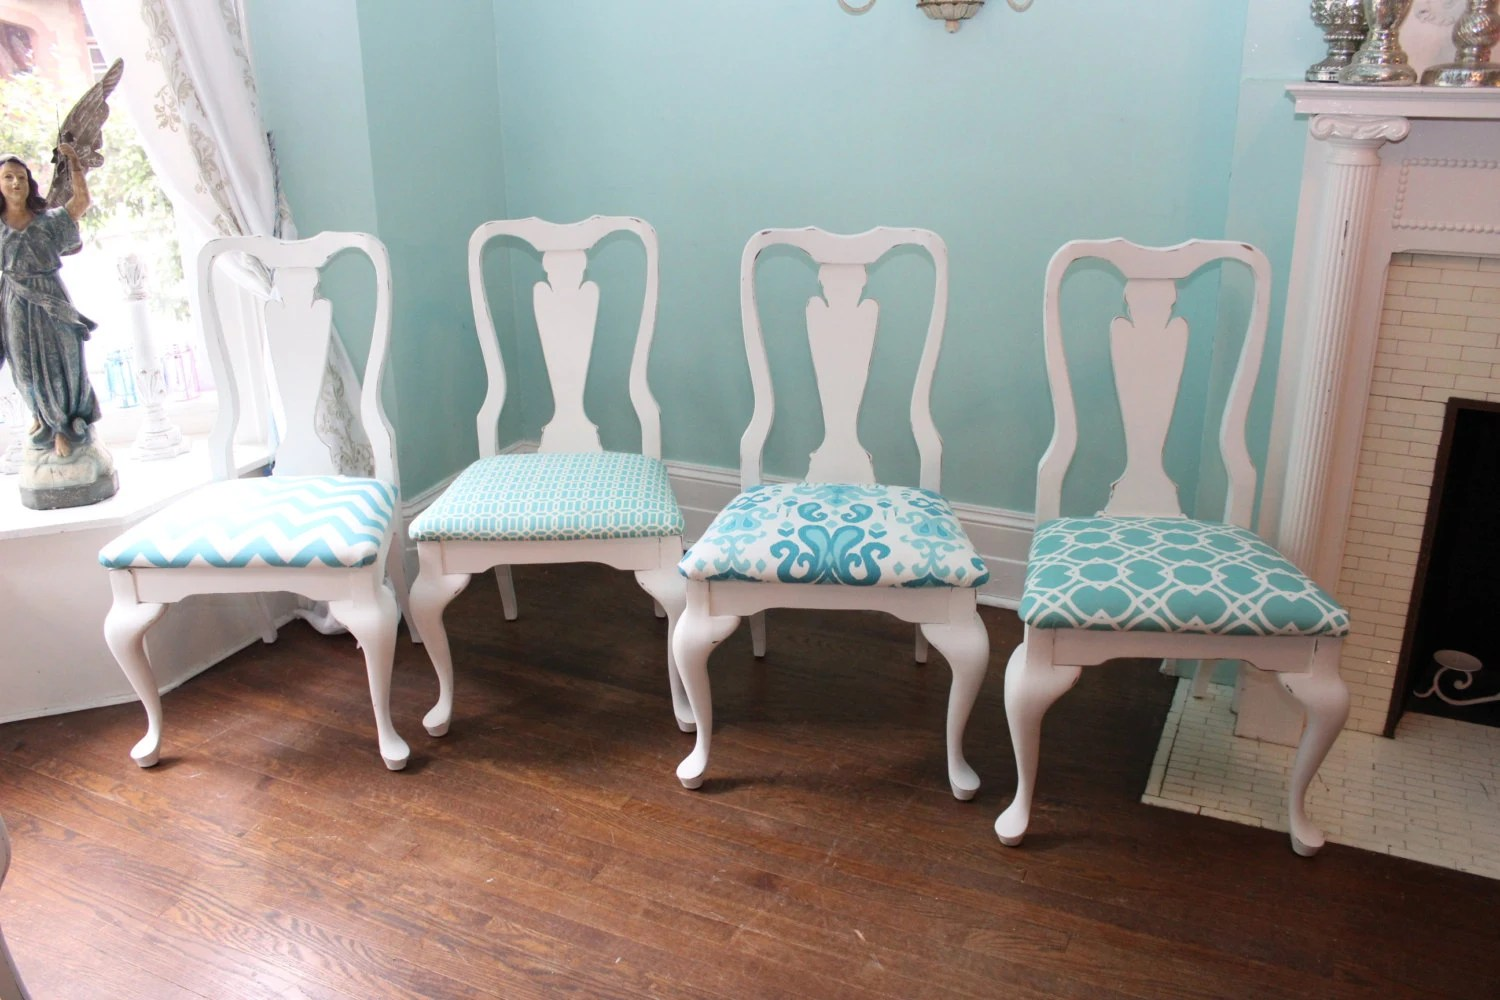 Beach Dining Chairs 4 Vintage Dining Chairs Shabby Chic Beach Cottage Coastal